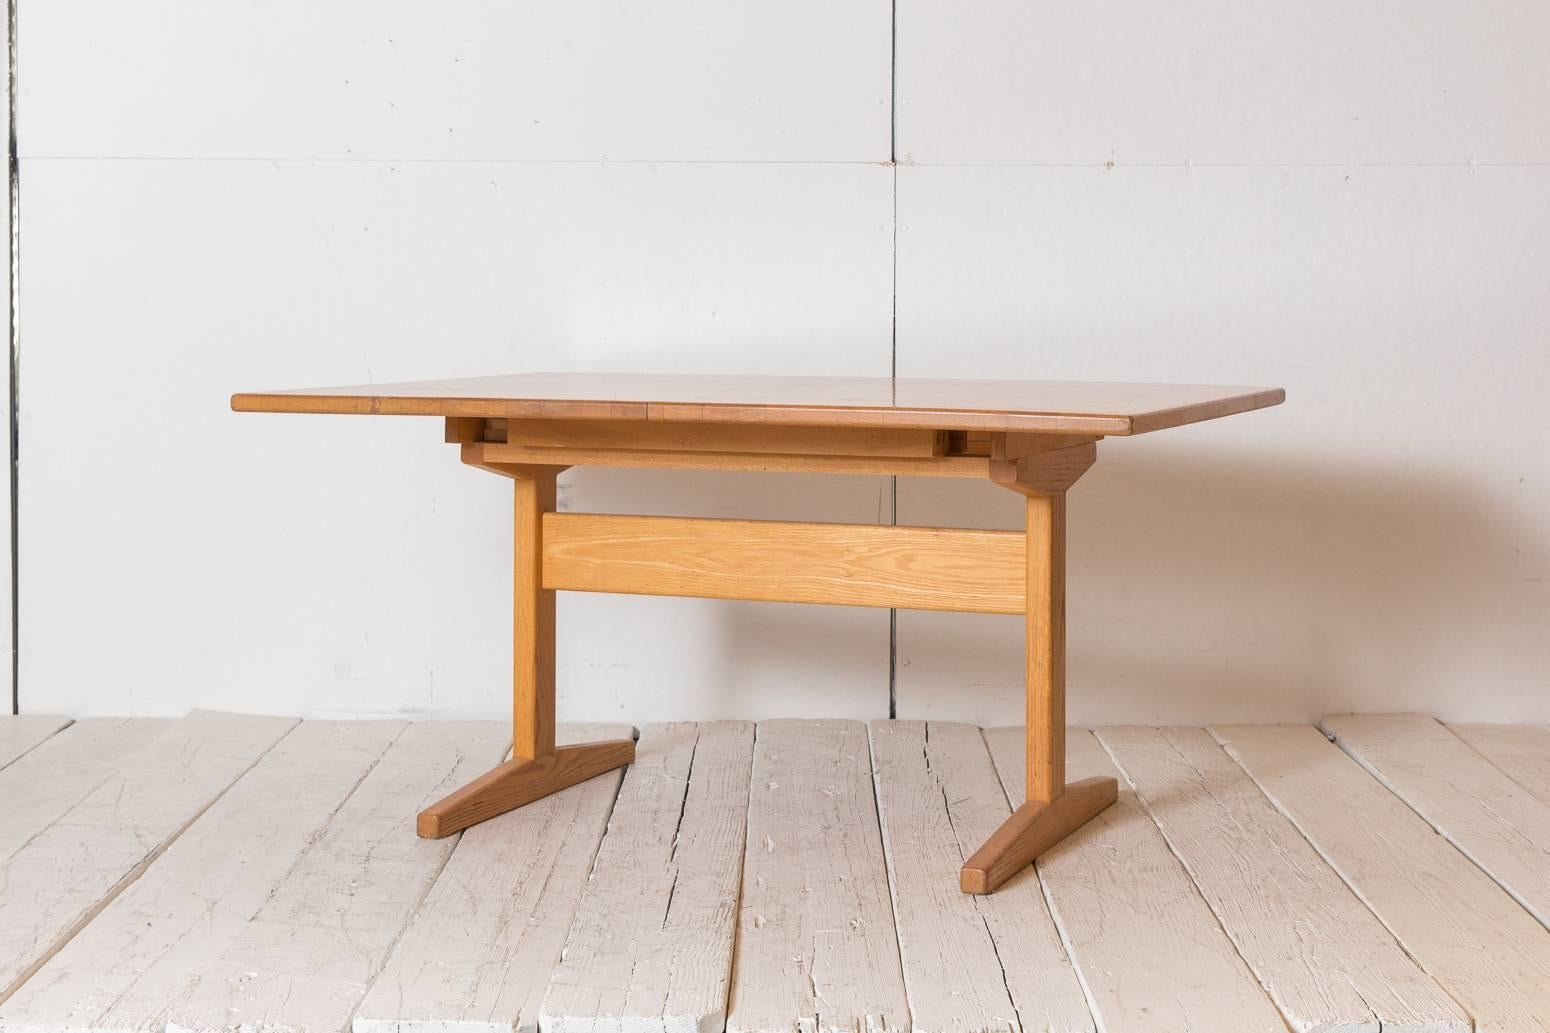 Extendible Shaker Style Oak Rectangular Dining Table With Trestle Base.  Table Measures 109